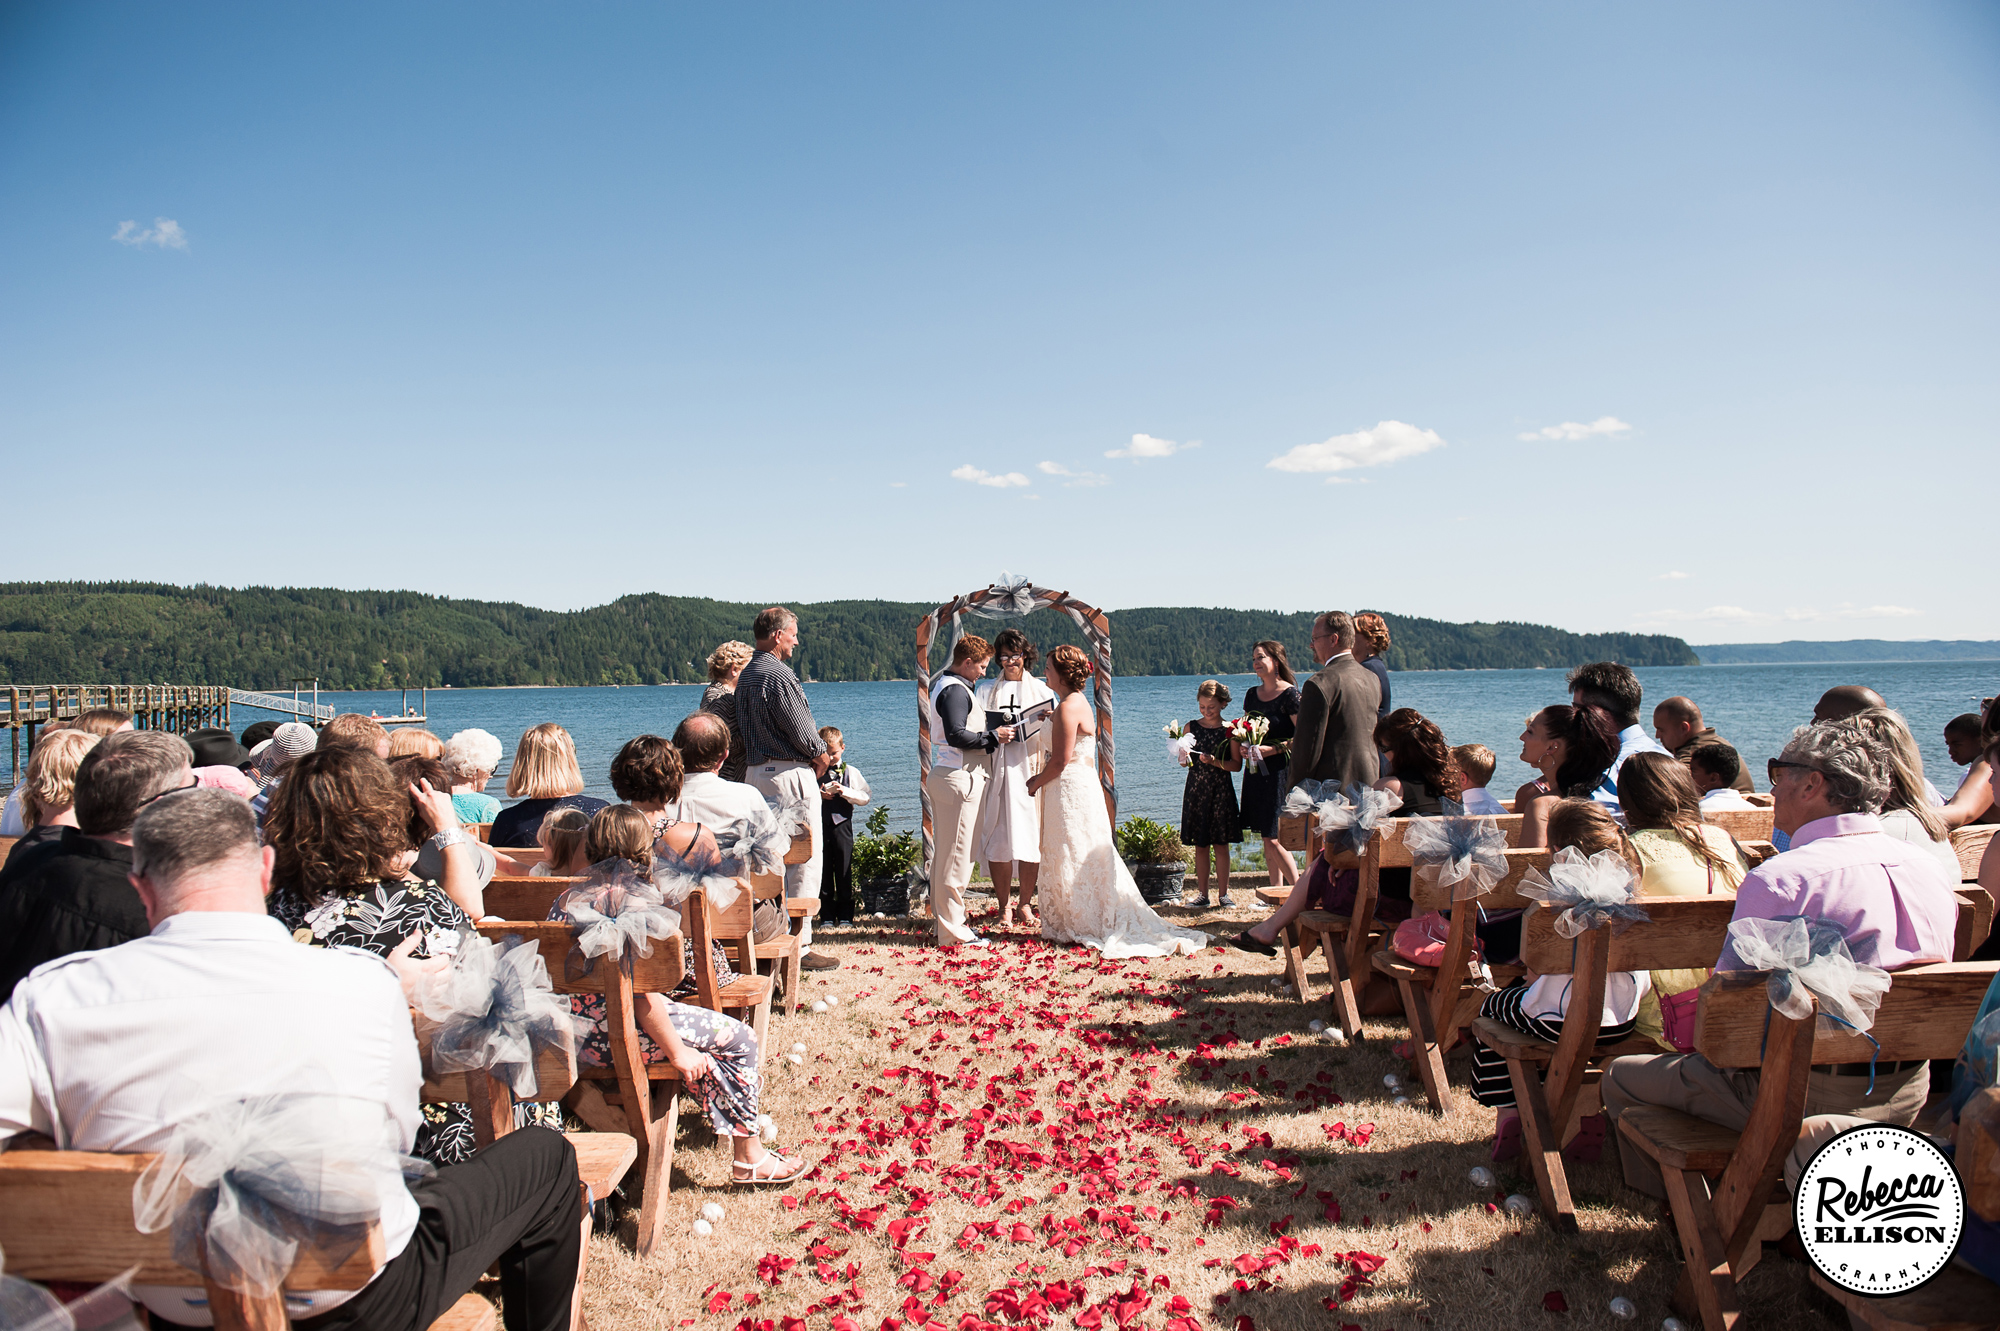 Beachfront wedding in Hoodsport, Wa featuring a flower petals in the sand, a wooden arch and view of the ocean photographed by Rebecca Ellison Photography